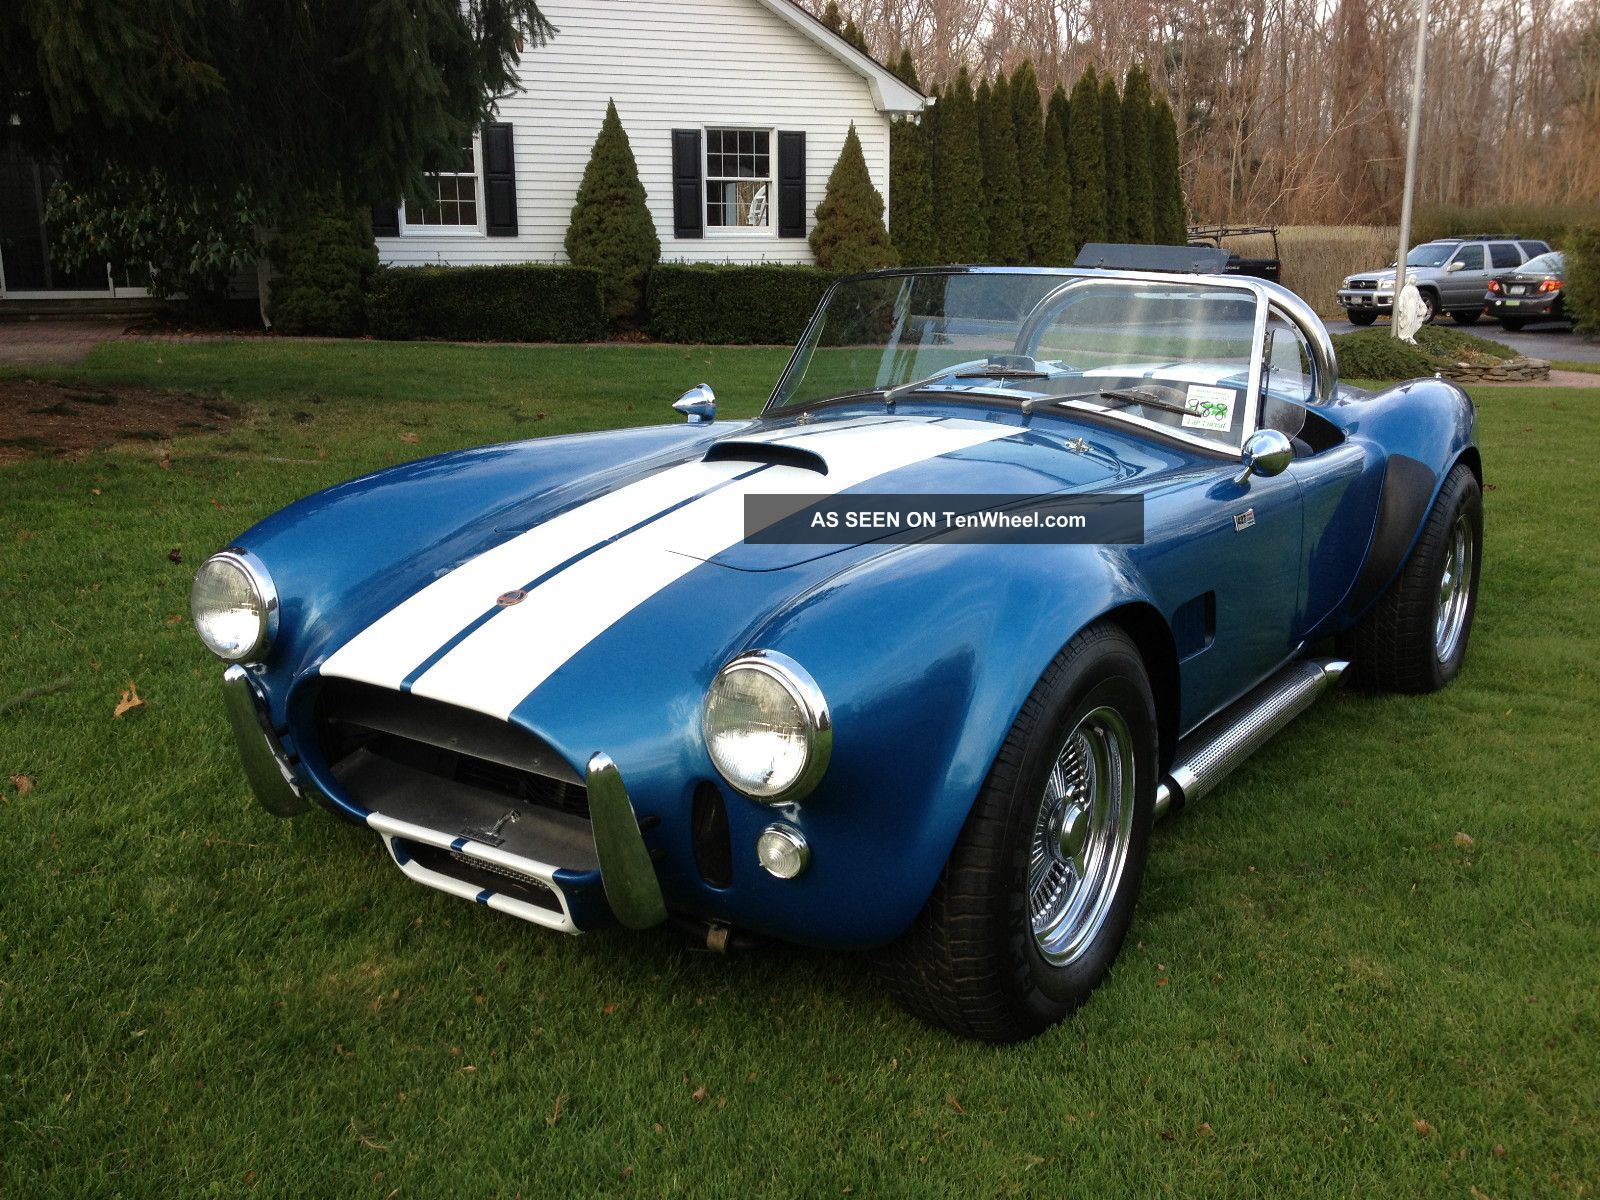 1966 Shelby 427 Cobra Factory Built. Shelby photo